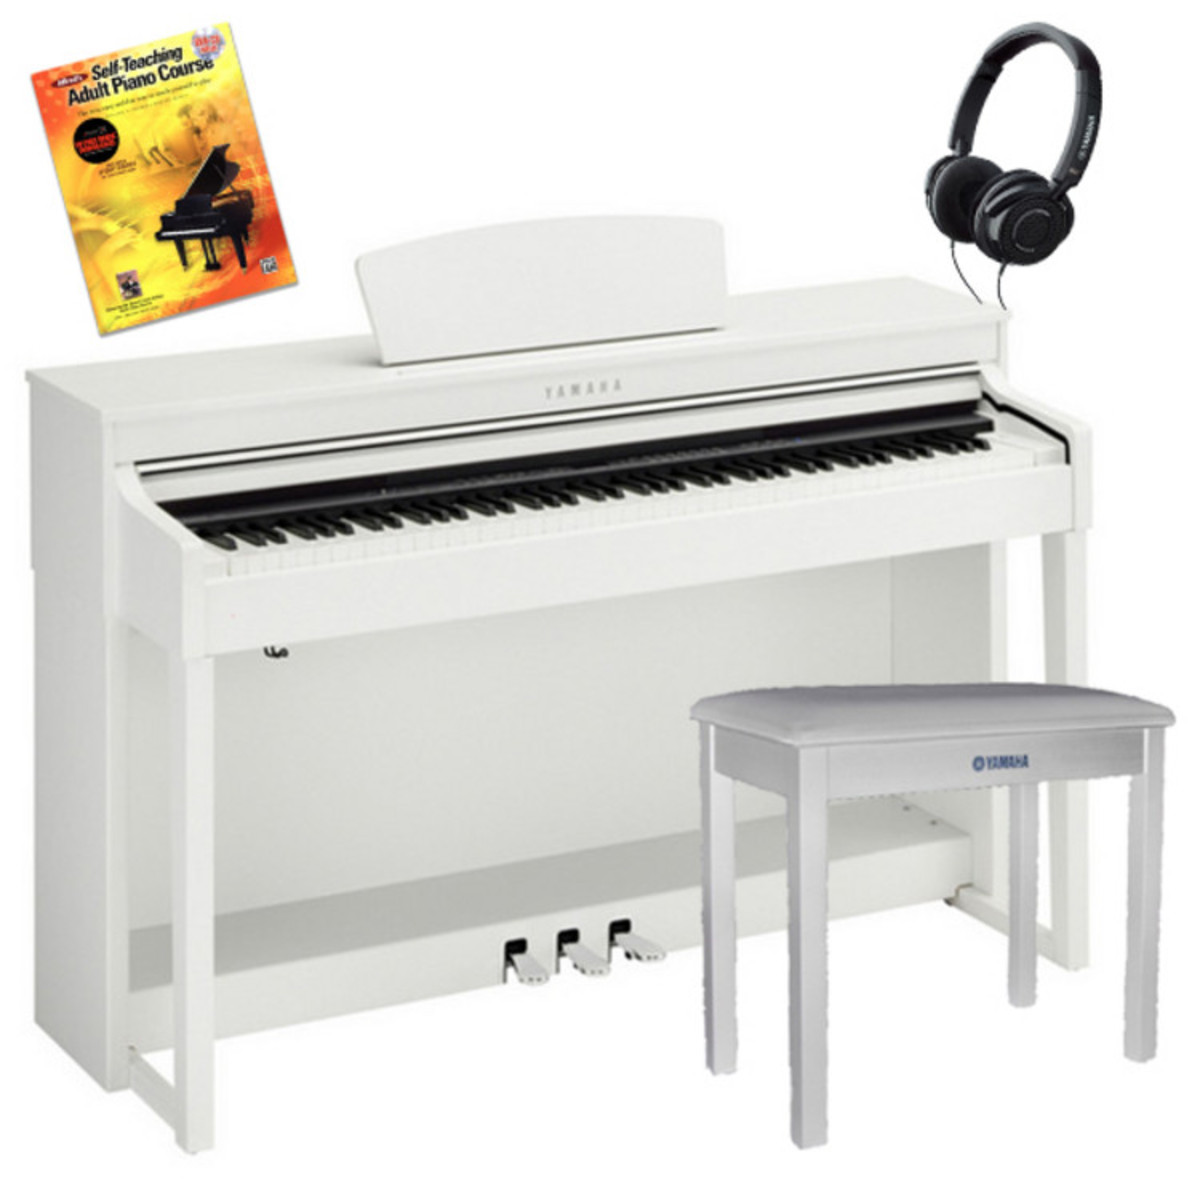 disc yamaha clavinova clp 430wh blanc avec banc casques livre. Black Bedroom Furniture Sets. Home Design Ideas